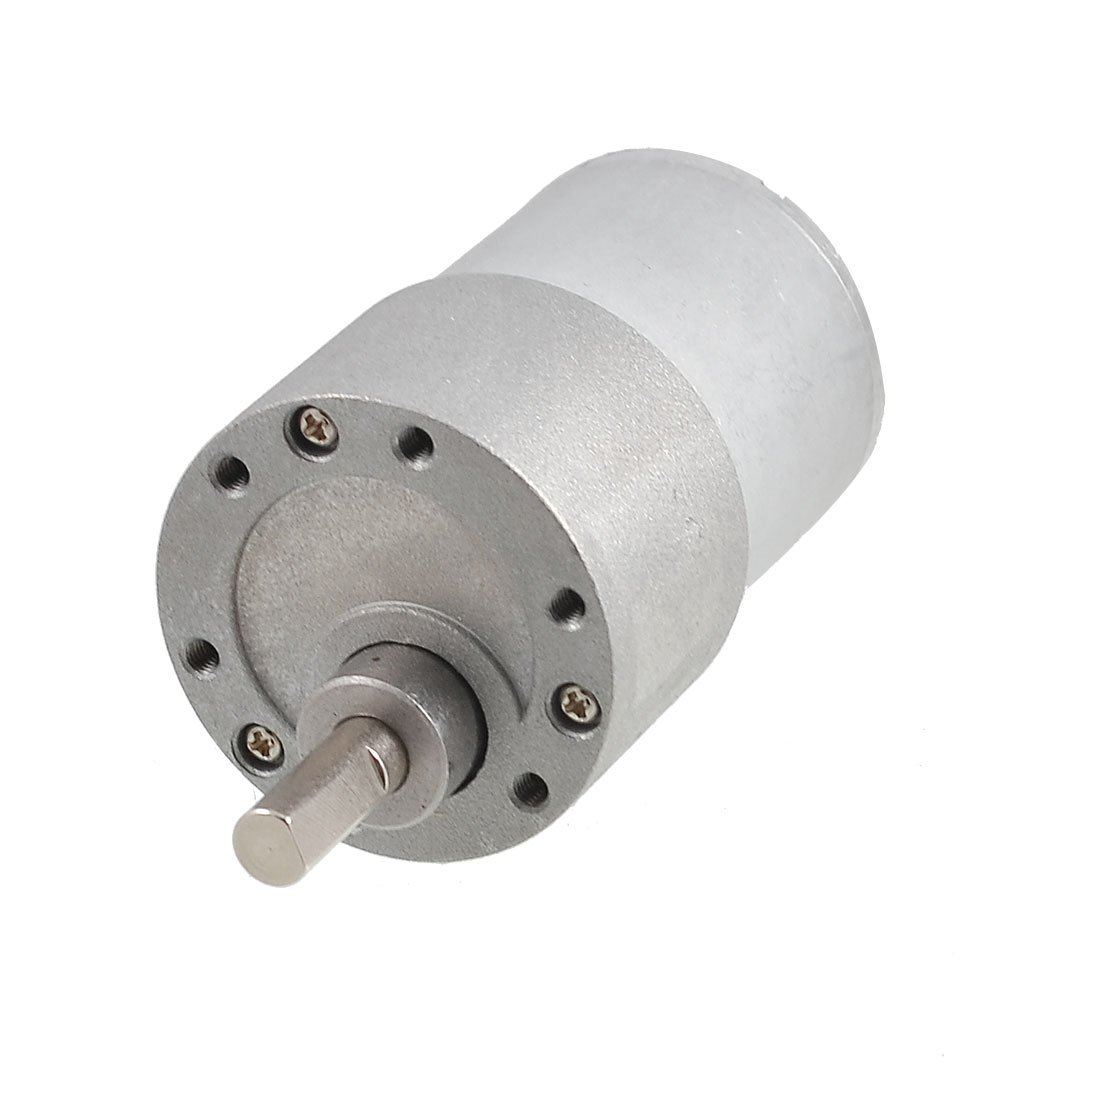 Repairing Part 37GB DC 12V 200RPM 100mA 2-Pin Electric Geared Motor Sourcingmap a12080900ux0024